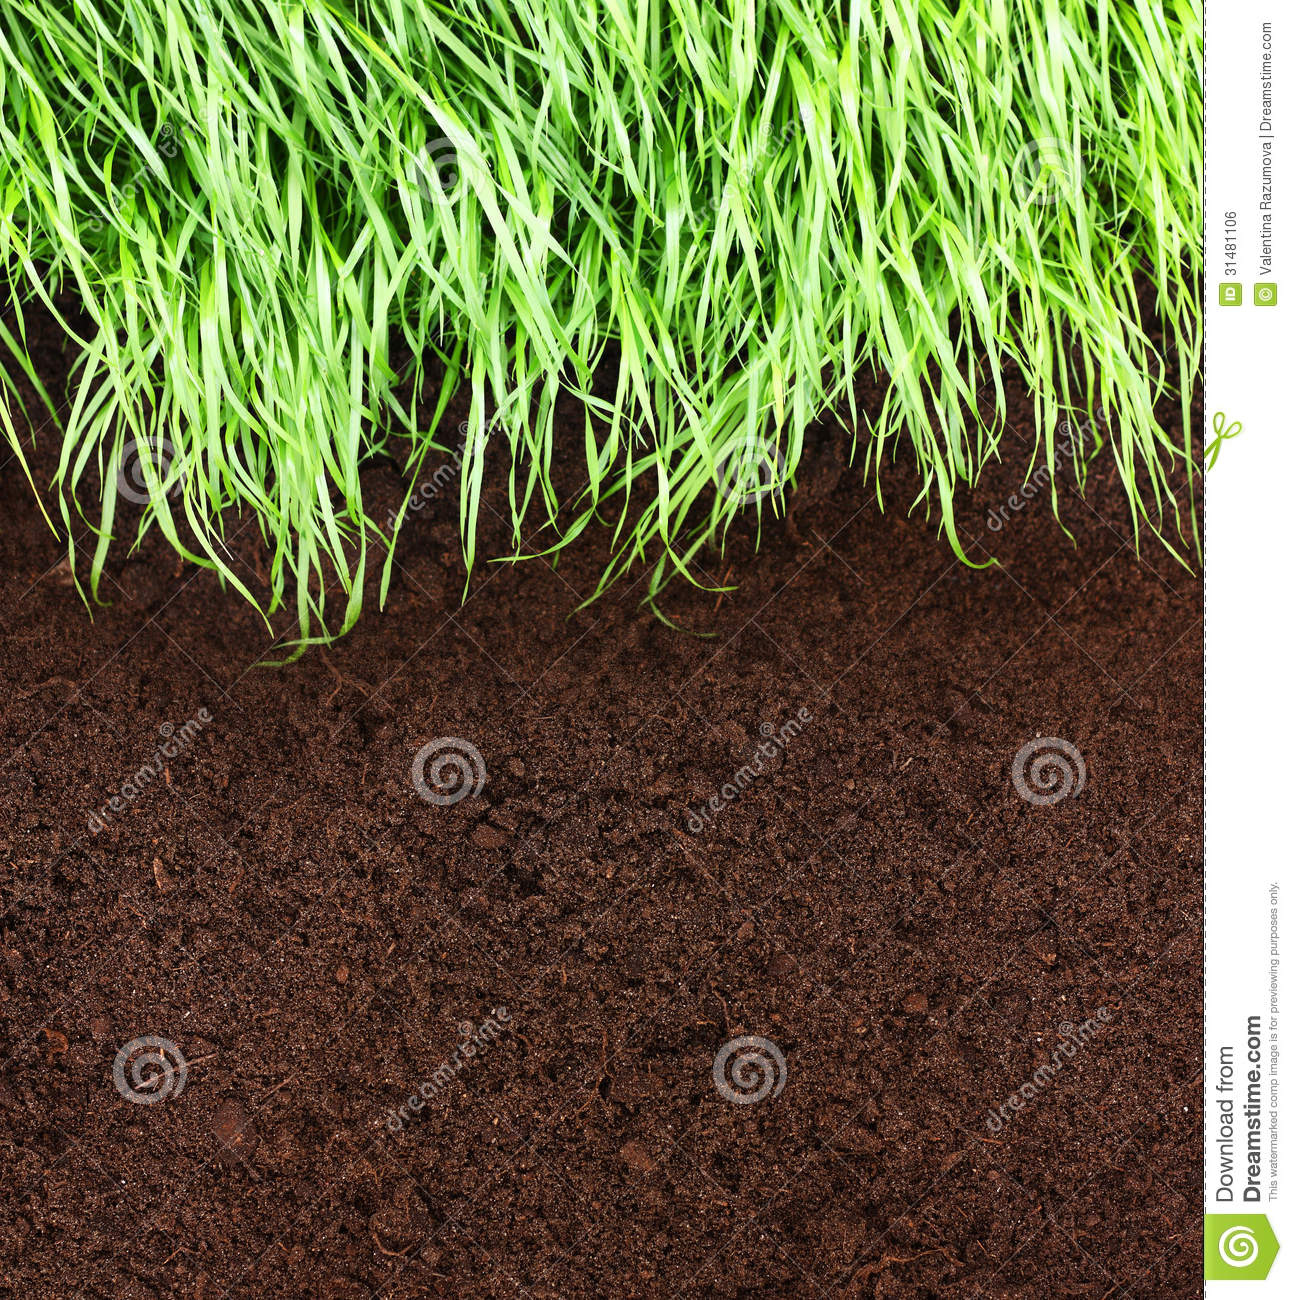 Green grass and soil royalty free stock image image for Soil and green